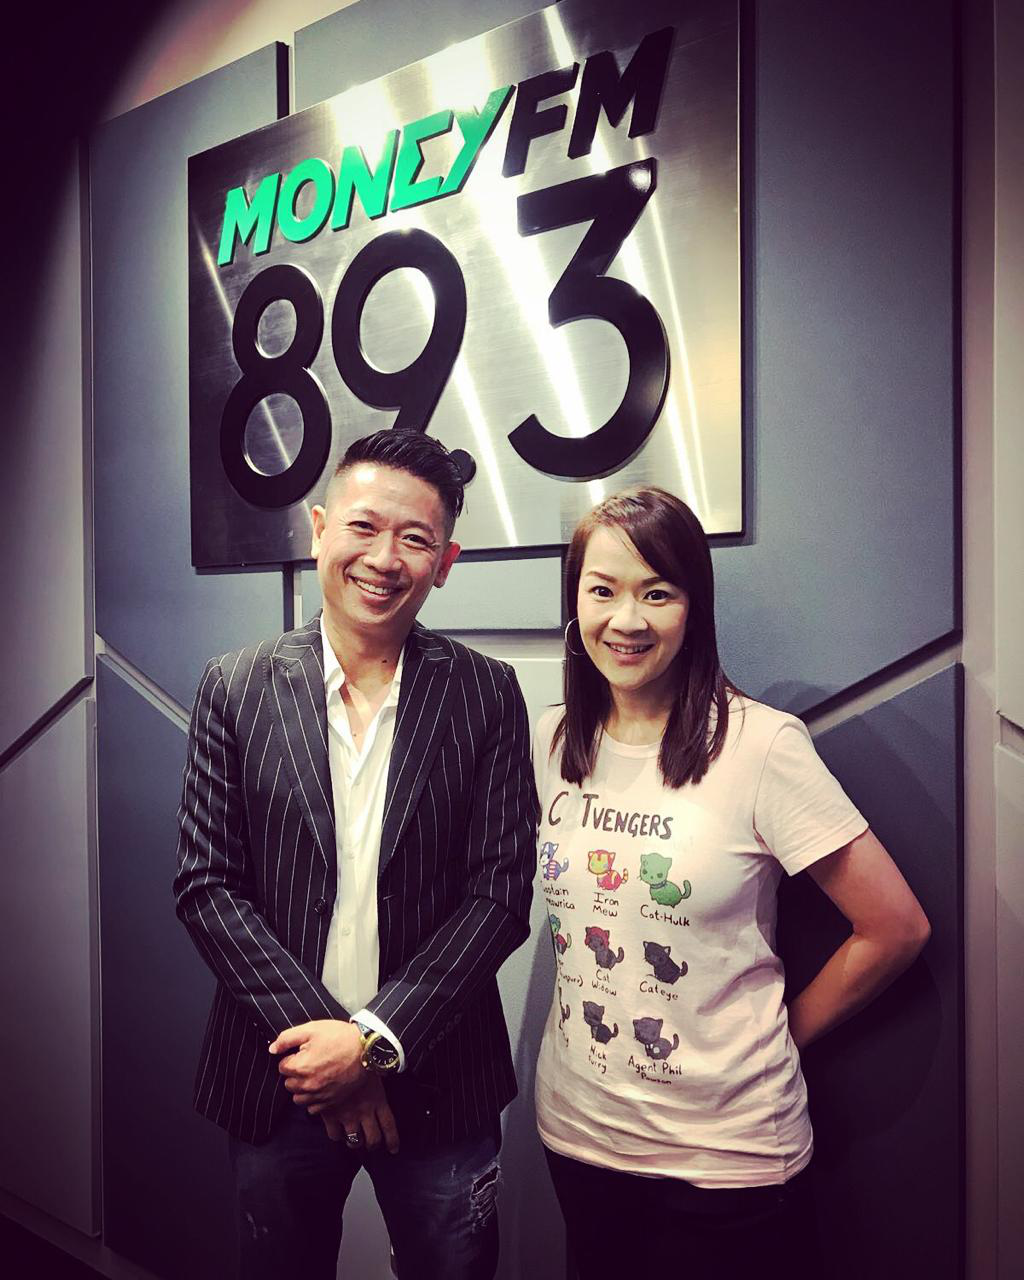 MONEY FM 89.3 RADIO INTERVIEW